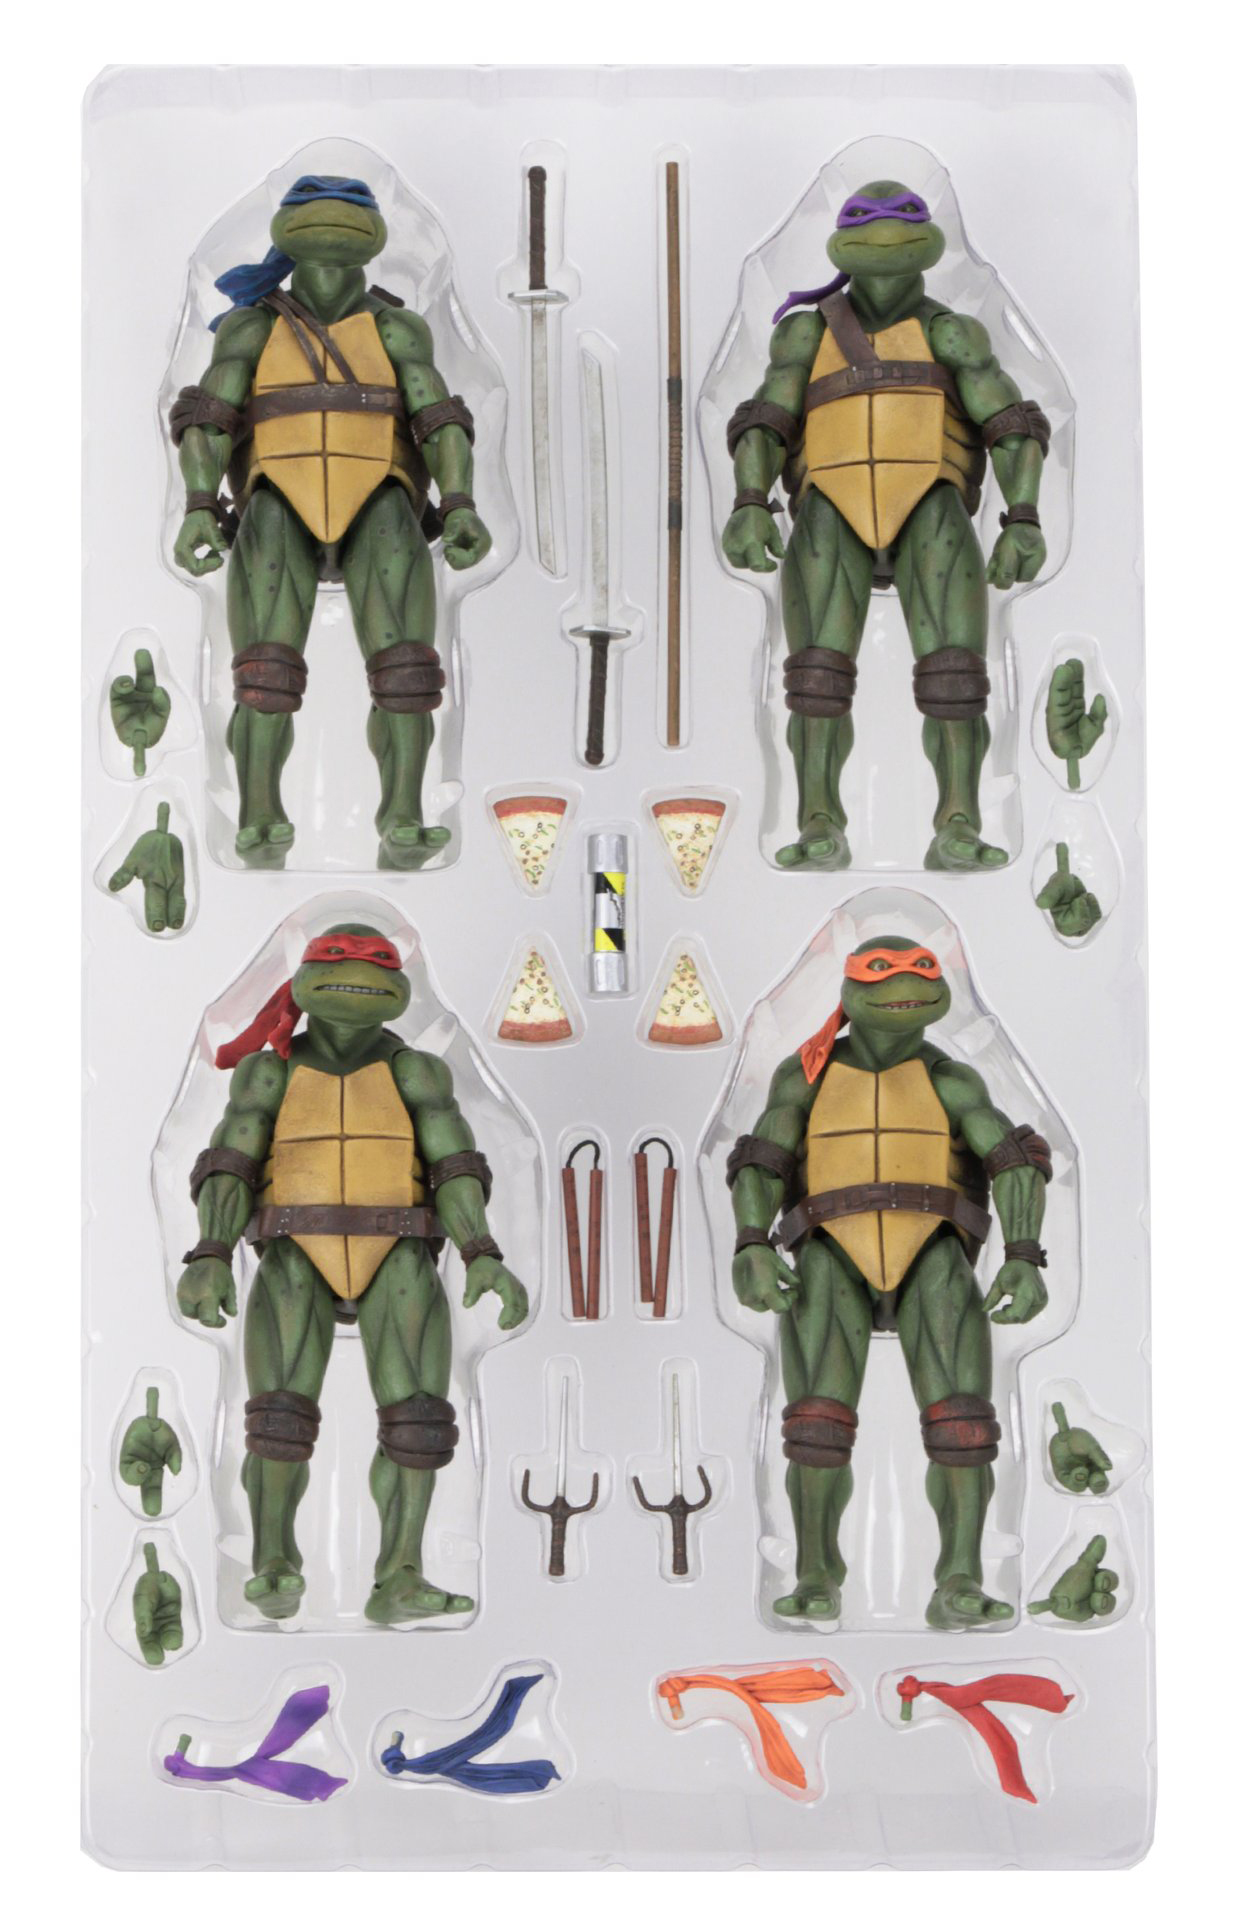 tmnt-neca-1990-7-inch-figures-sdcc-2018-exclusives-3